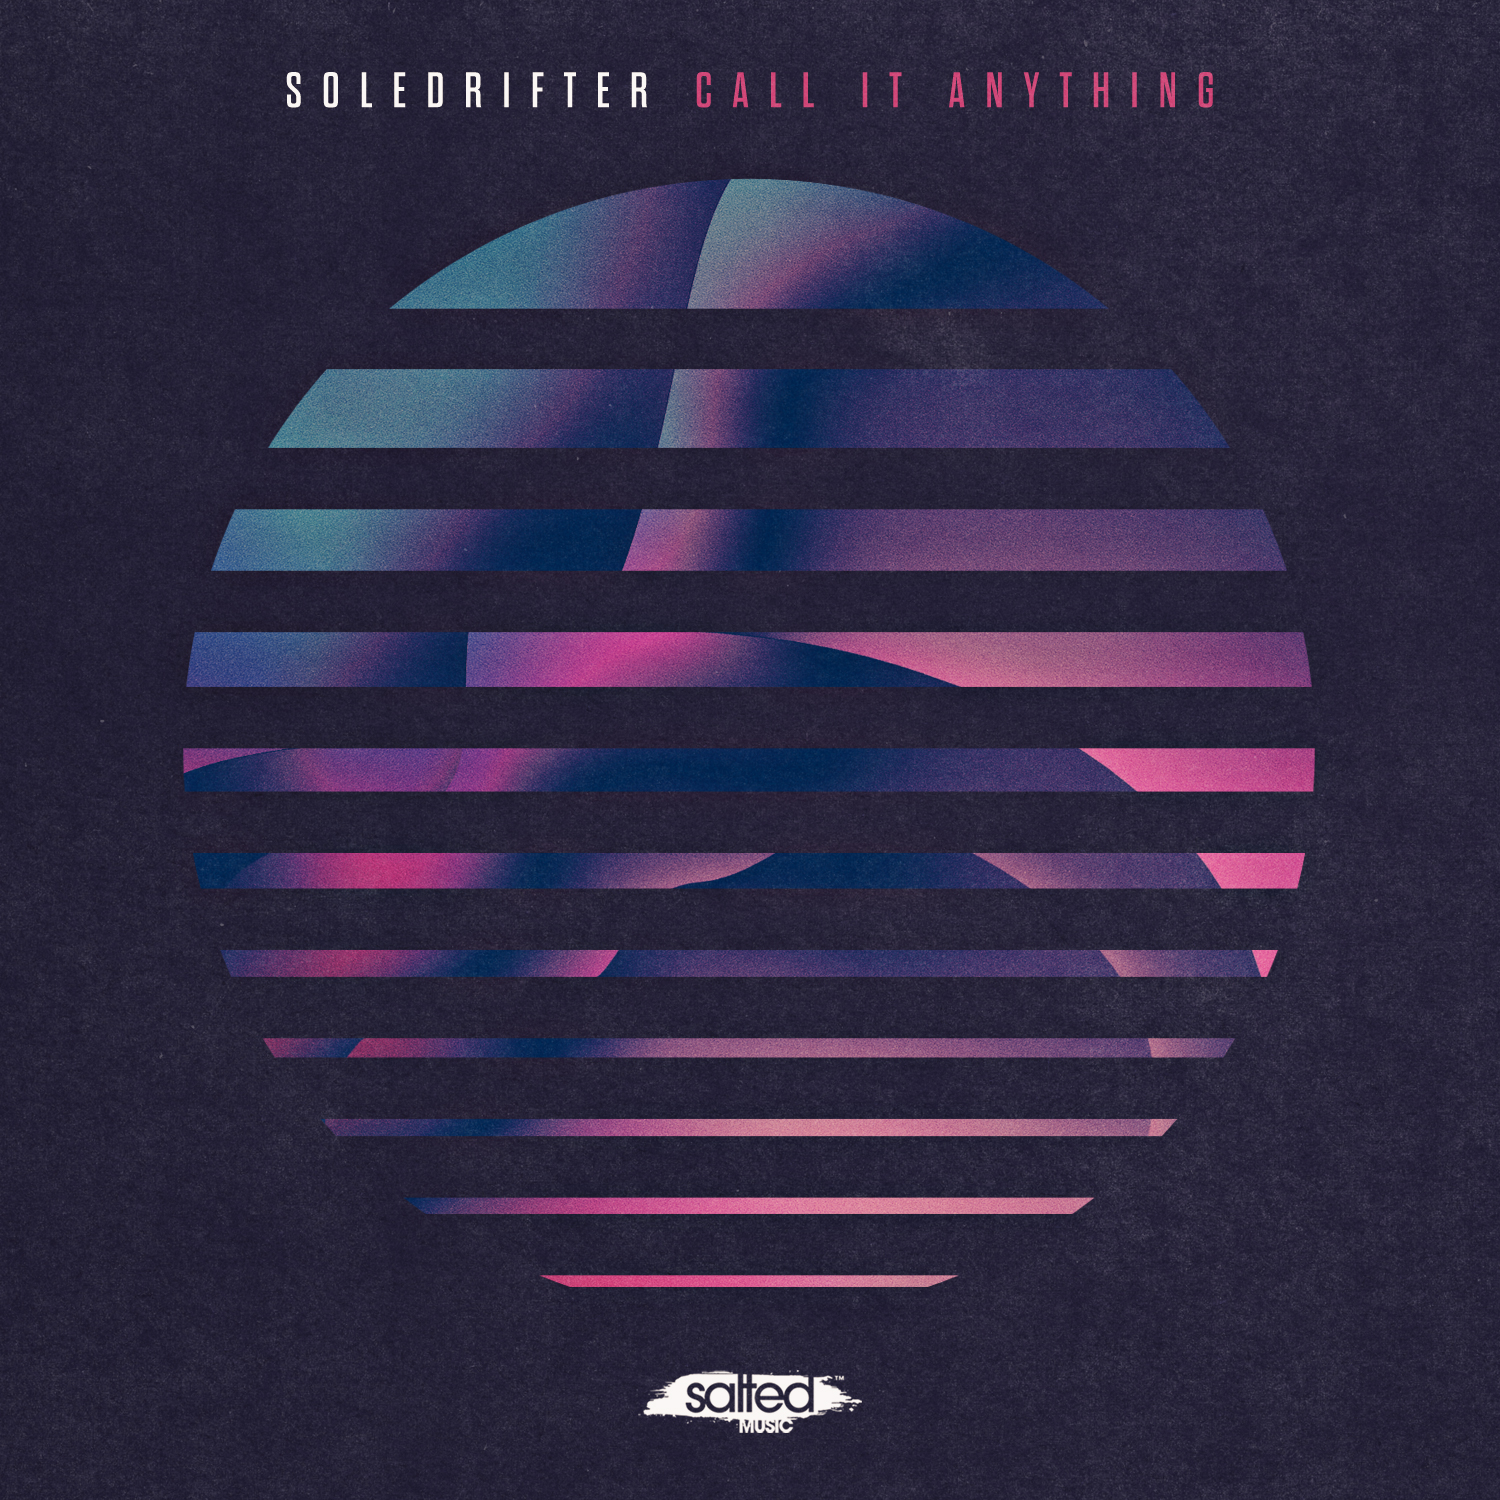 SLT095: Call It Anything - Souldrifter (Salted Music)